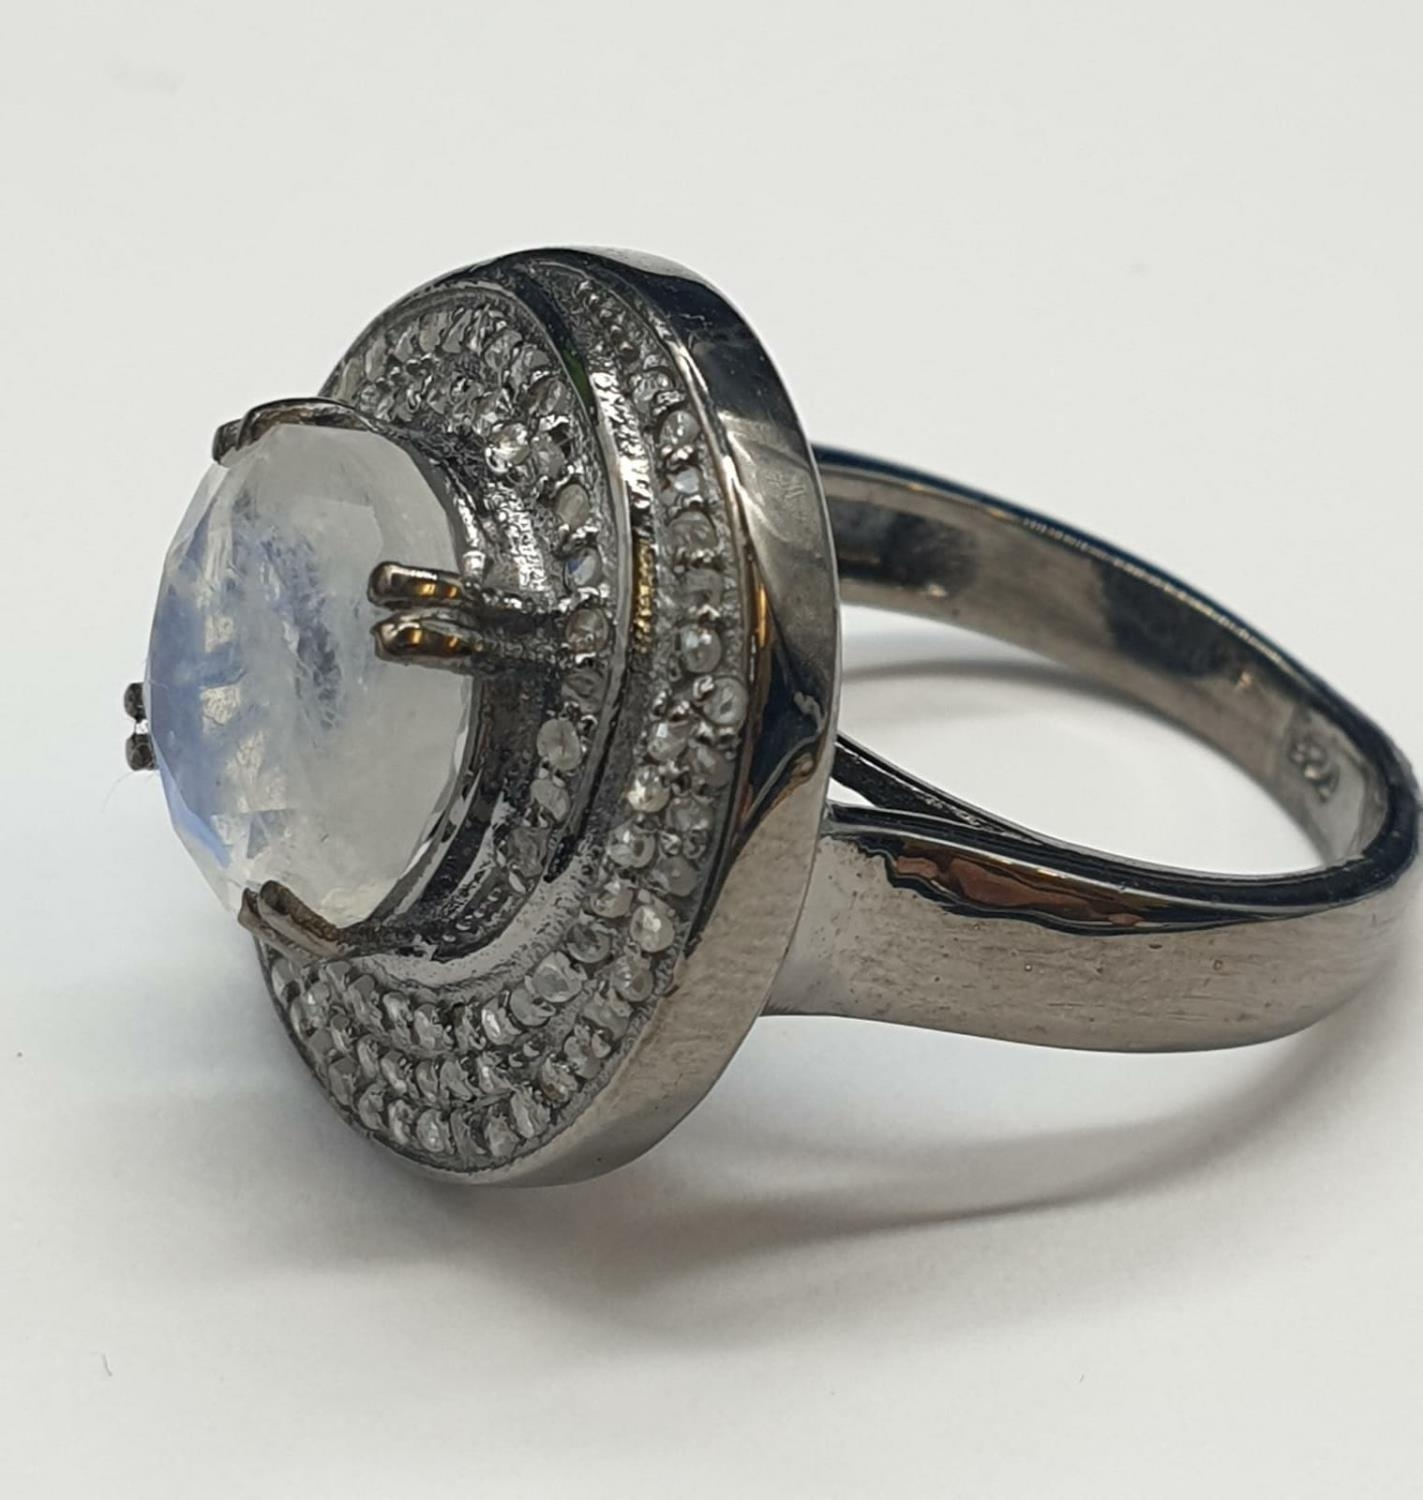 4 Ct Moonstone Ring with 0.75 Ct Rose cut diamonds. Blackened silver. - Image 3 of 8